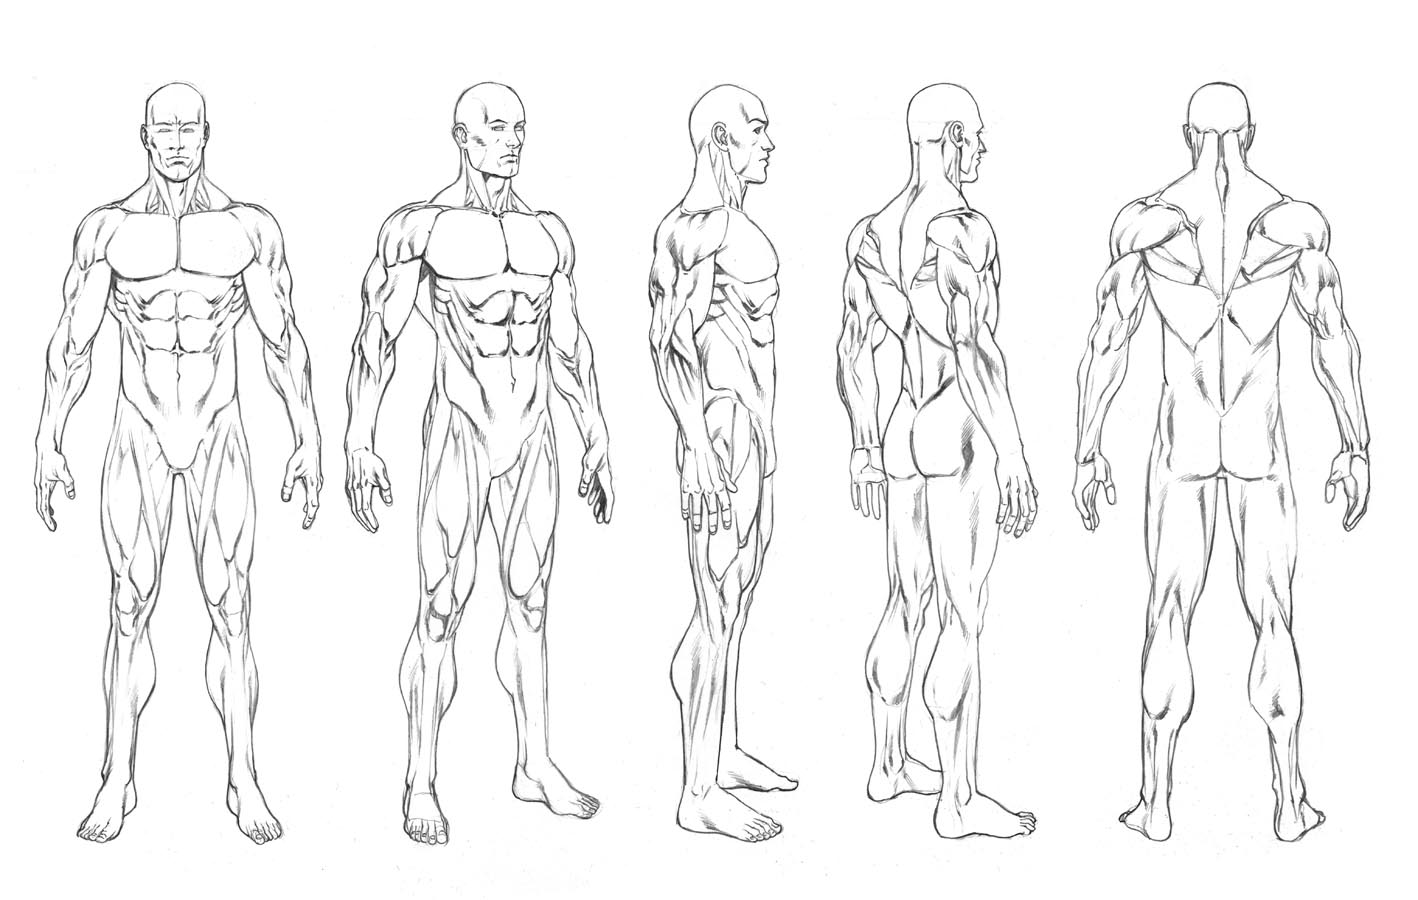 Male Body Outline Drawing At Getdrawings